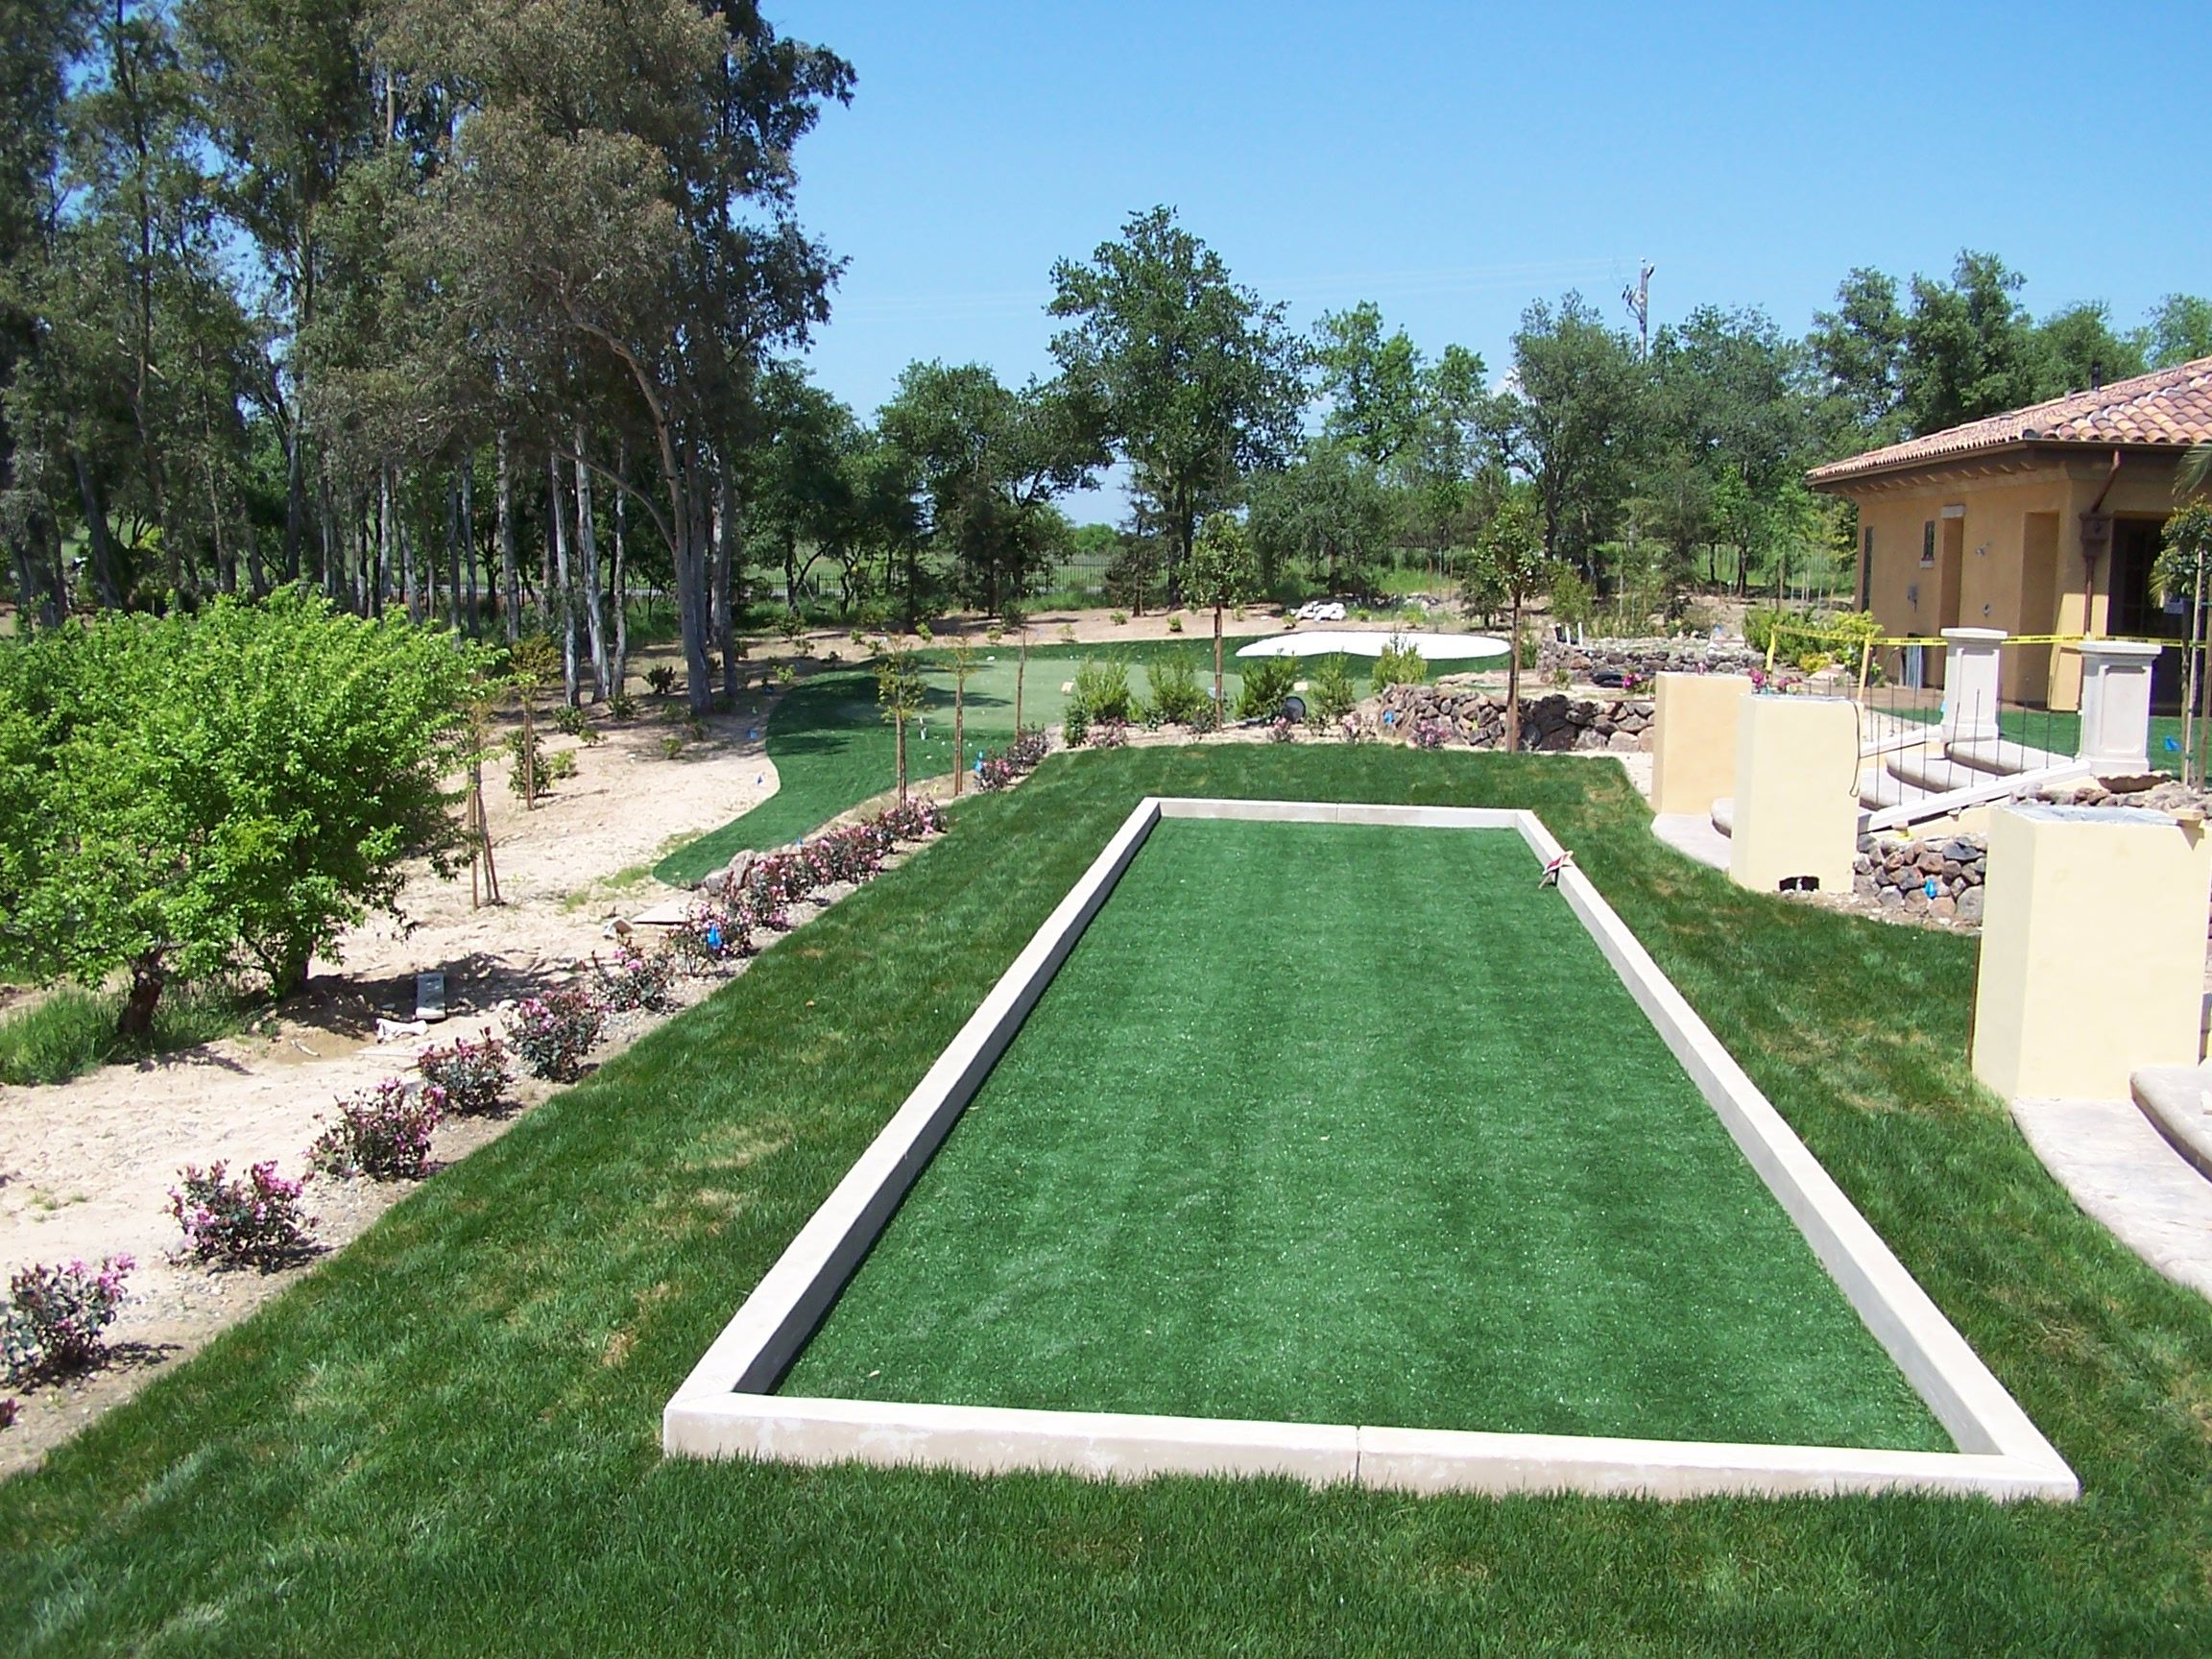 Bocce Court at Home   bocce-court-1